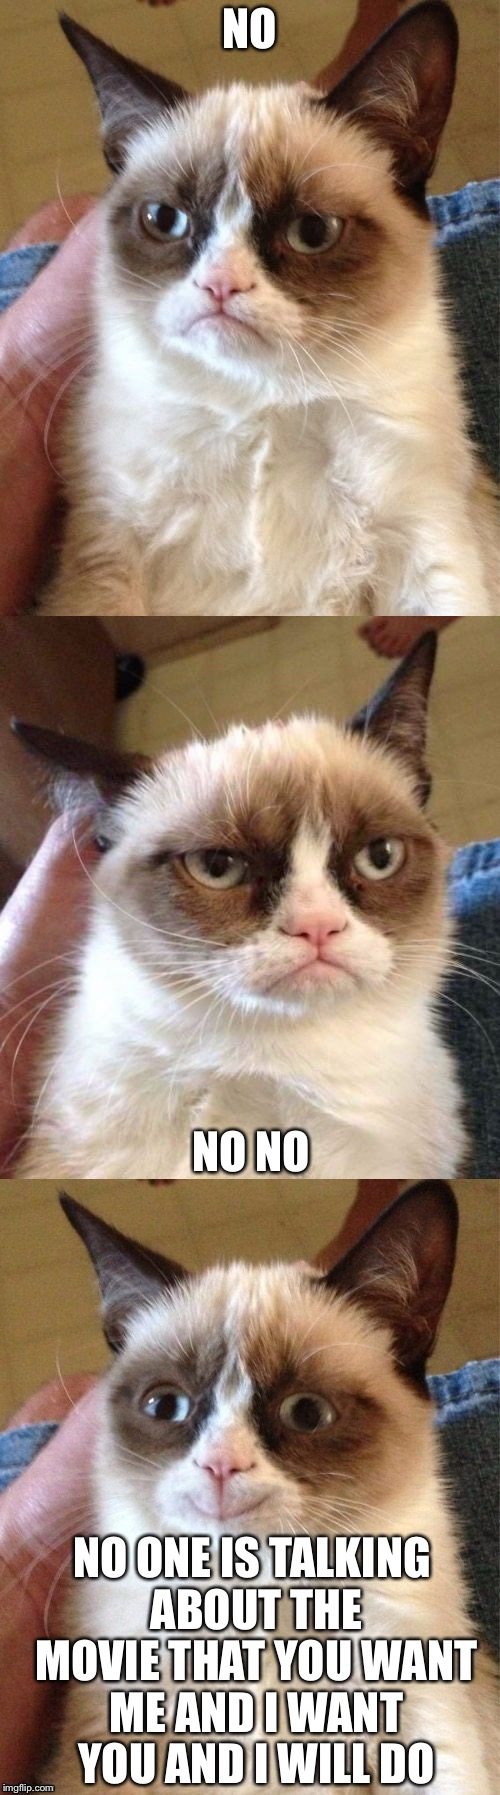 Grumpy cat's level | NO NO NO NO ONE IS TALKING ABOUT THE MOVIE THAT YOU WANT ME AND I WANT YOU AND I WILL DO | image tagged in bad pun grumpy cat,level,memes,happy cat | made w/ Imgflip meme maker